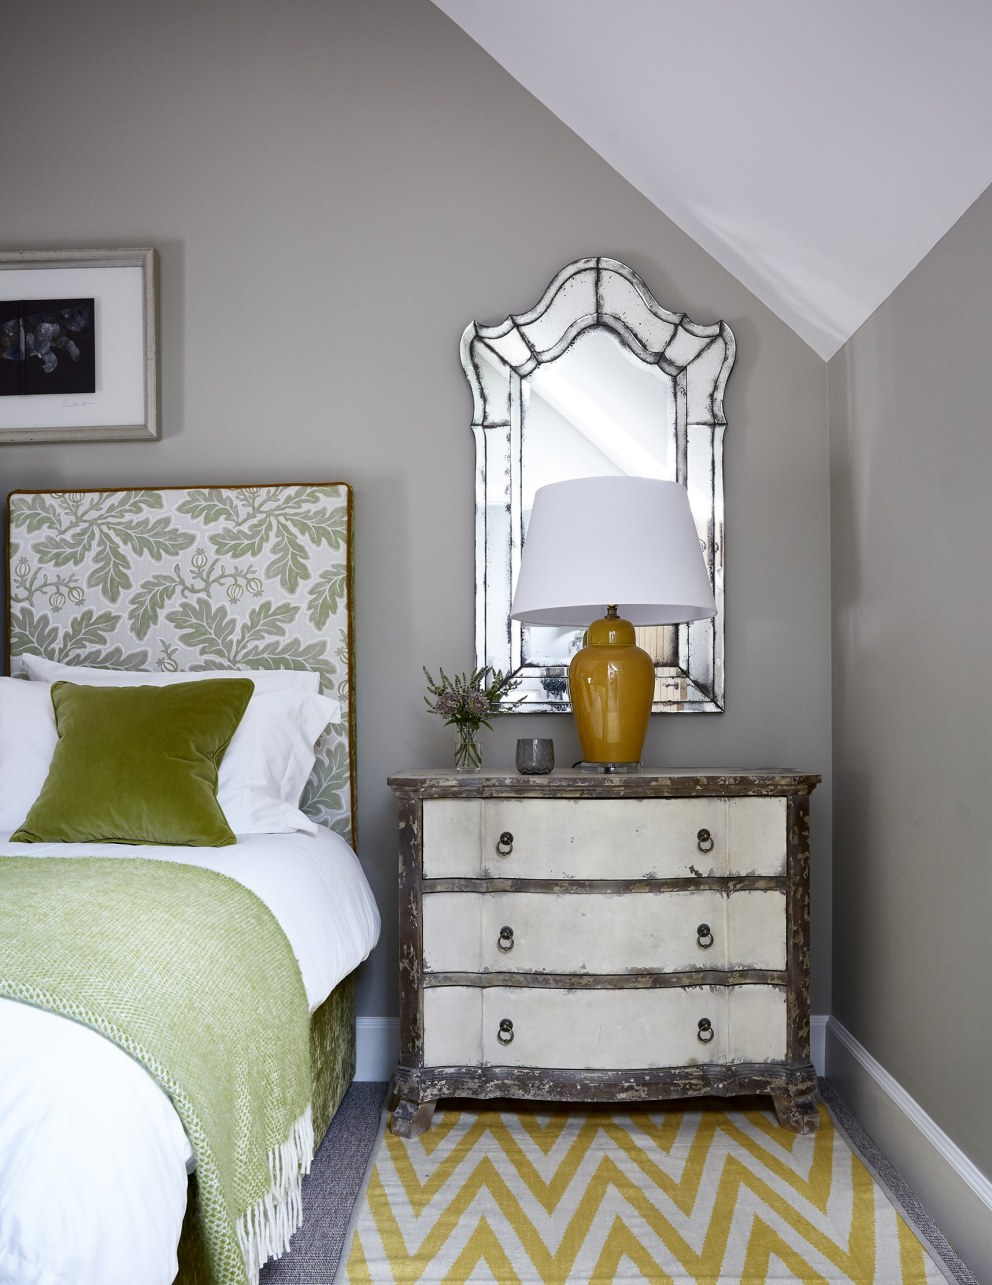 Scottish Holiday Cottages | Green Bedroom | Interior Designers